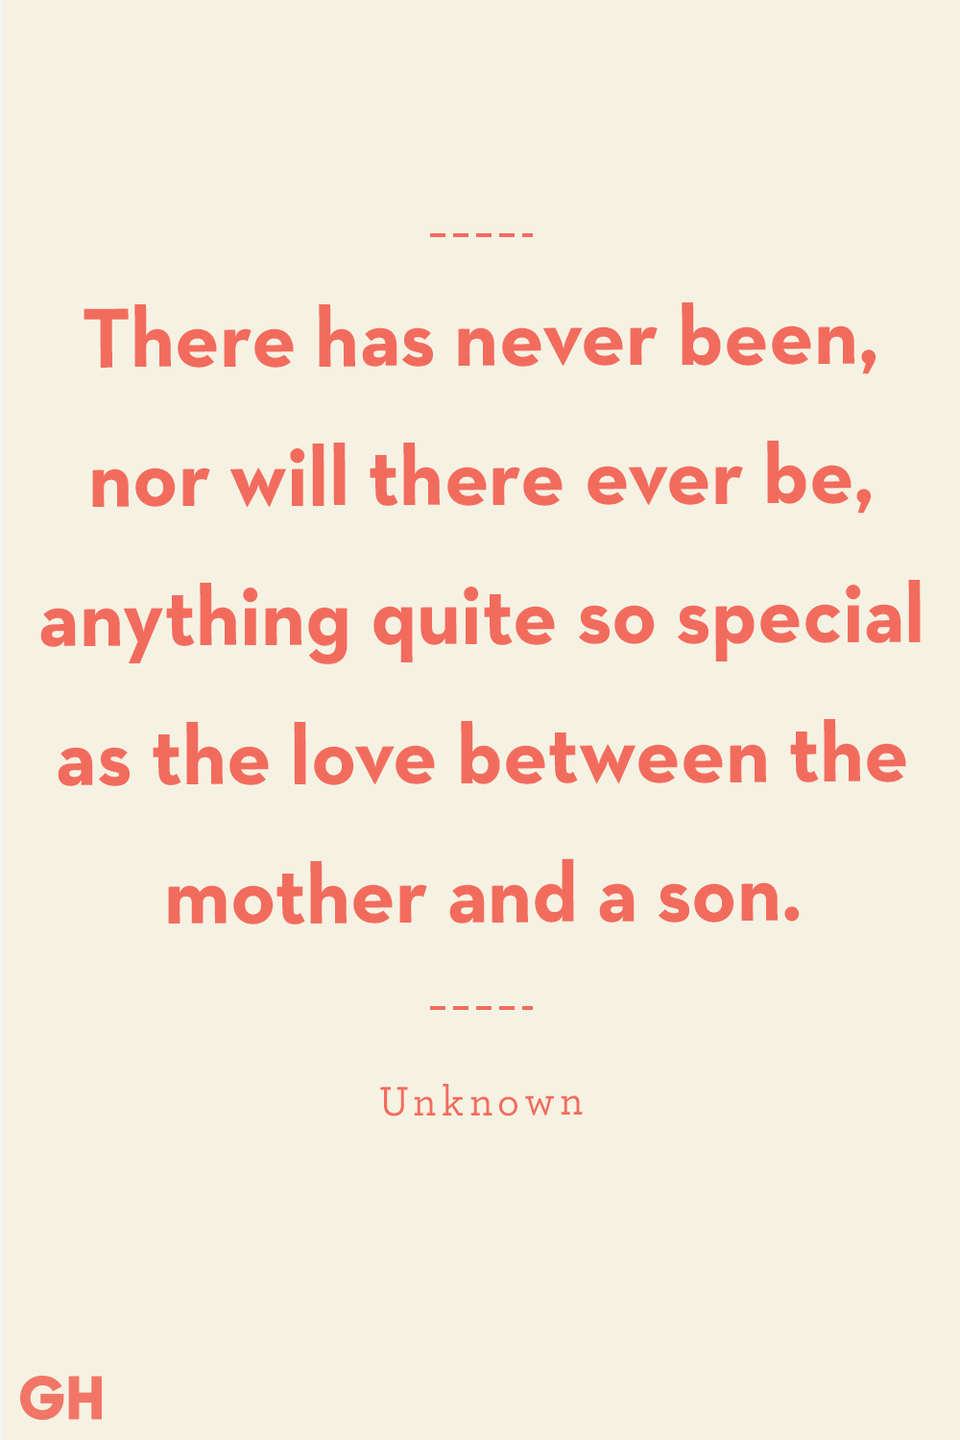 <p>There has never been, nor will there ever be, anything quite so special as the love between the mother and a son.</p>